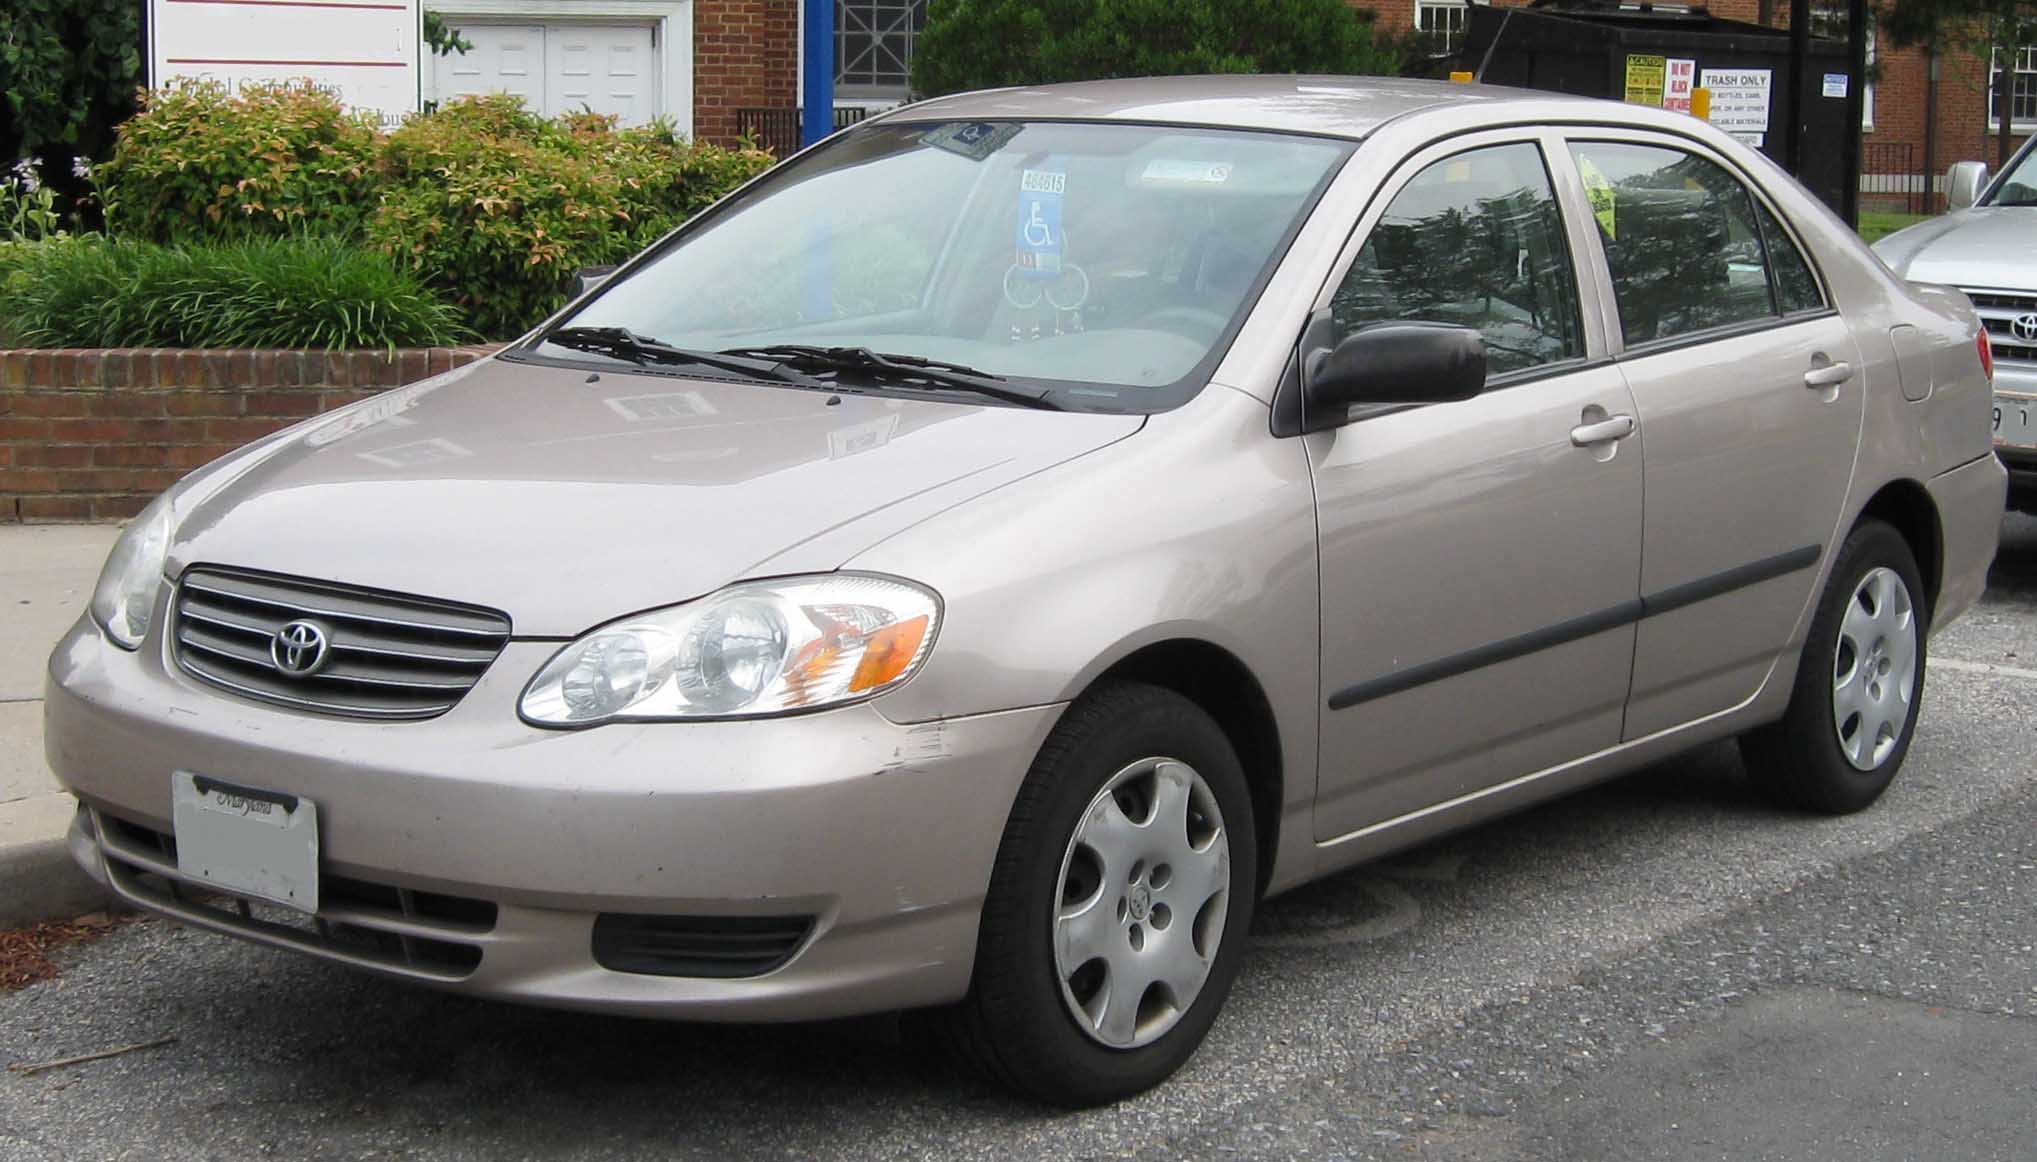 Toyota Corolla photo 15